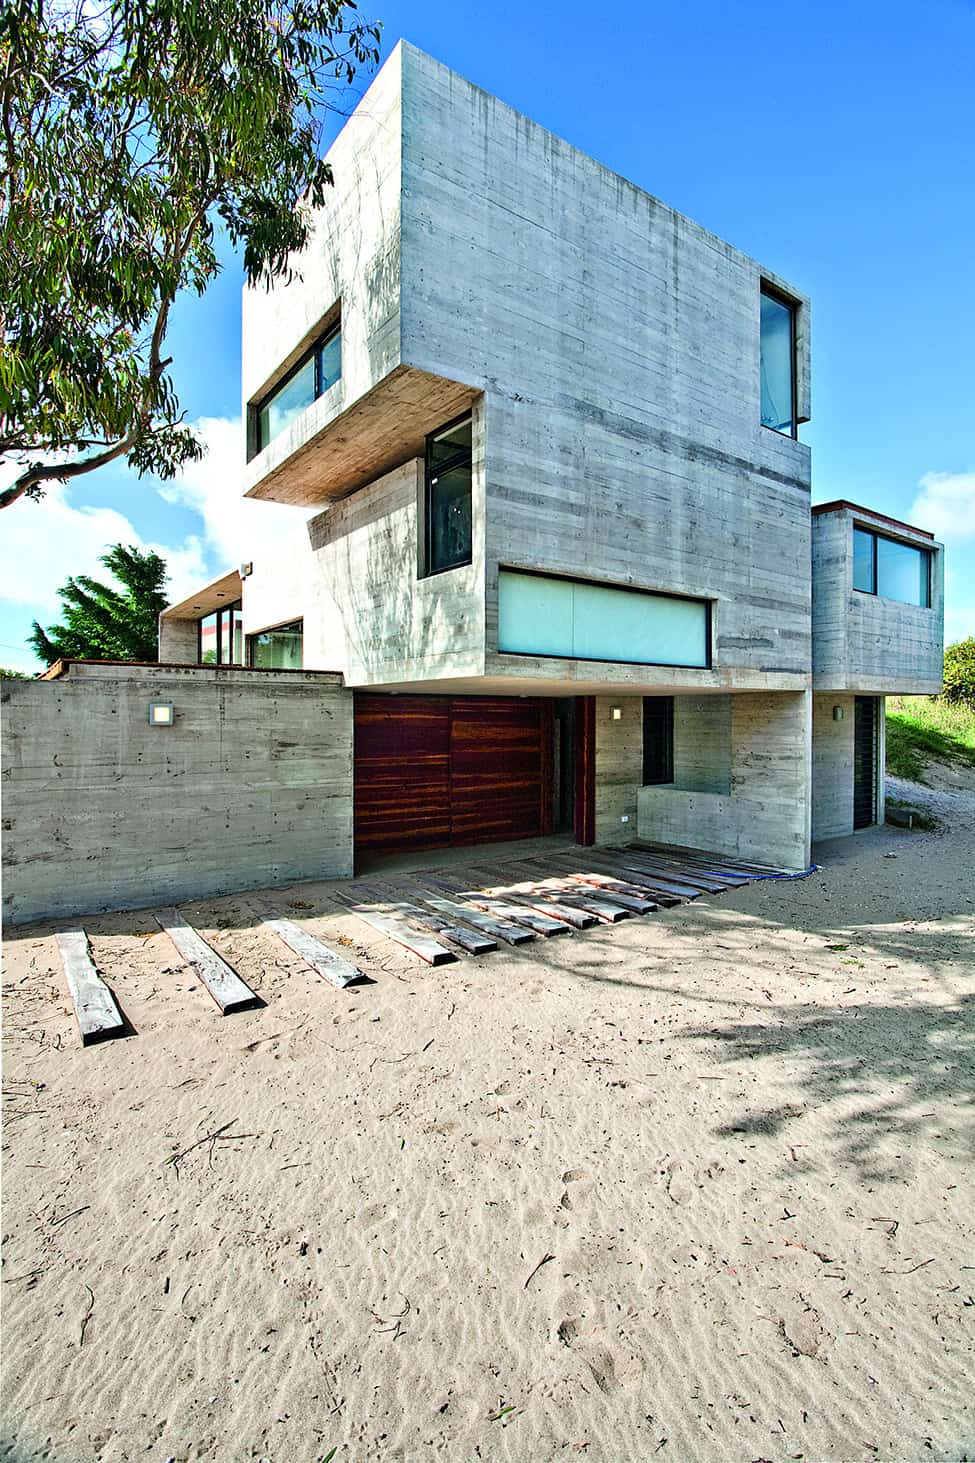 Industrial Aesthetic Values in a Beach Home by BAK Architects (2)